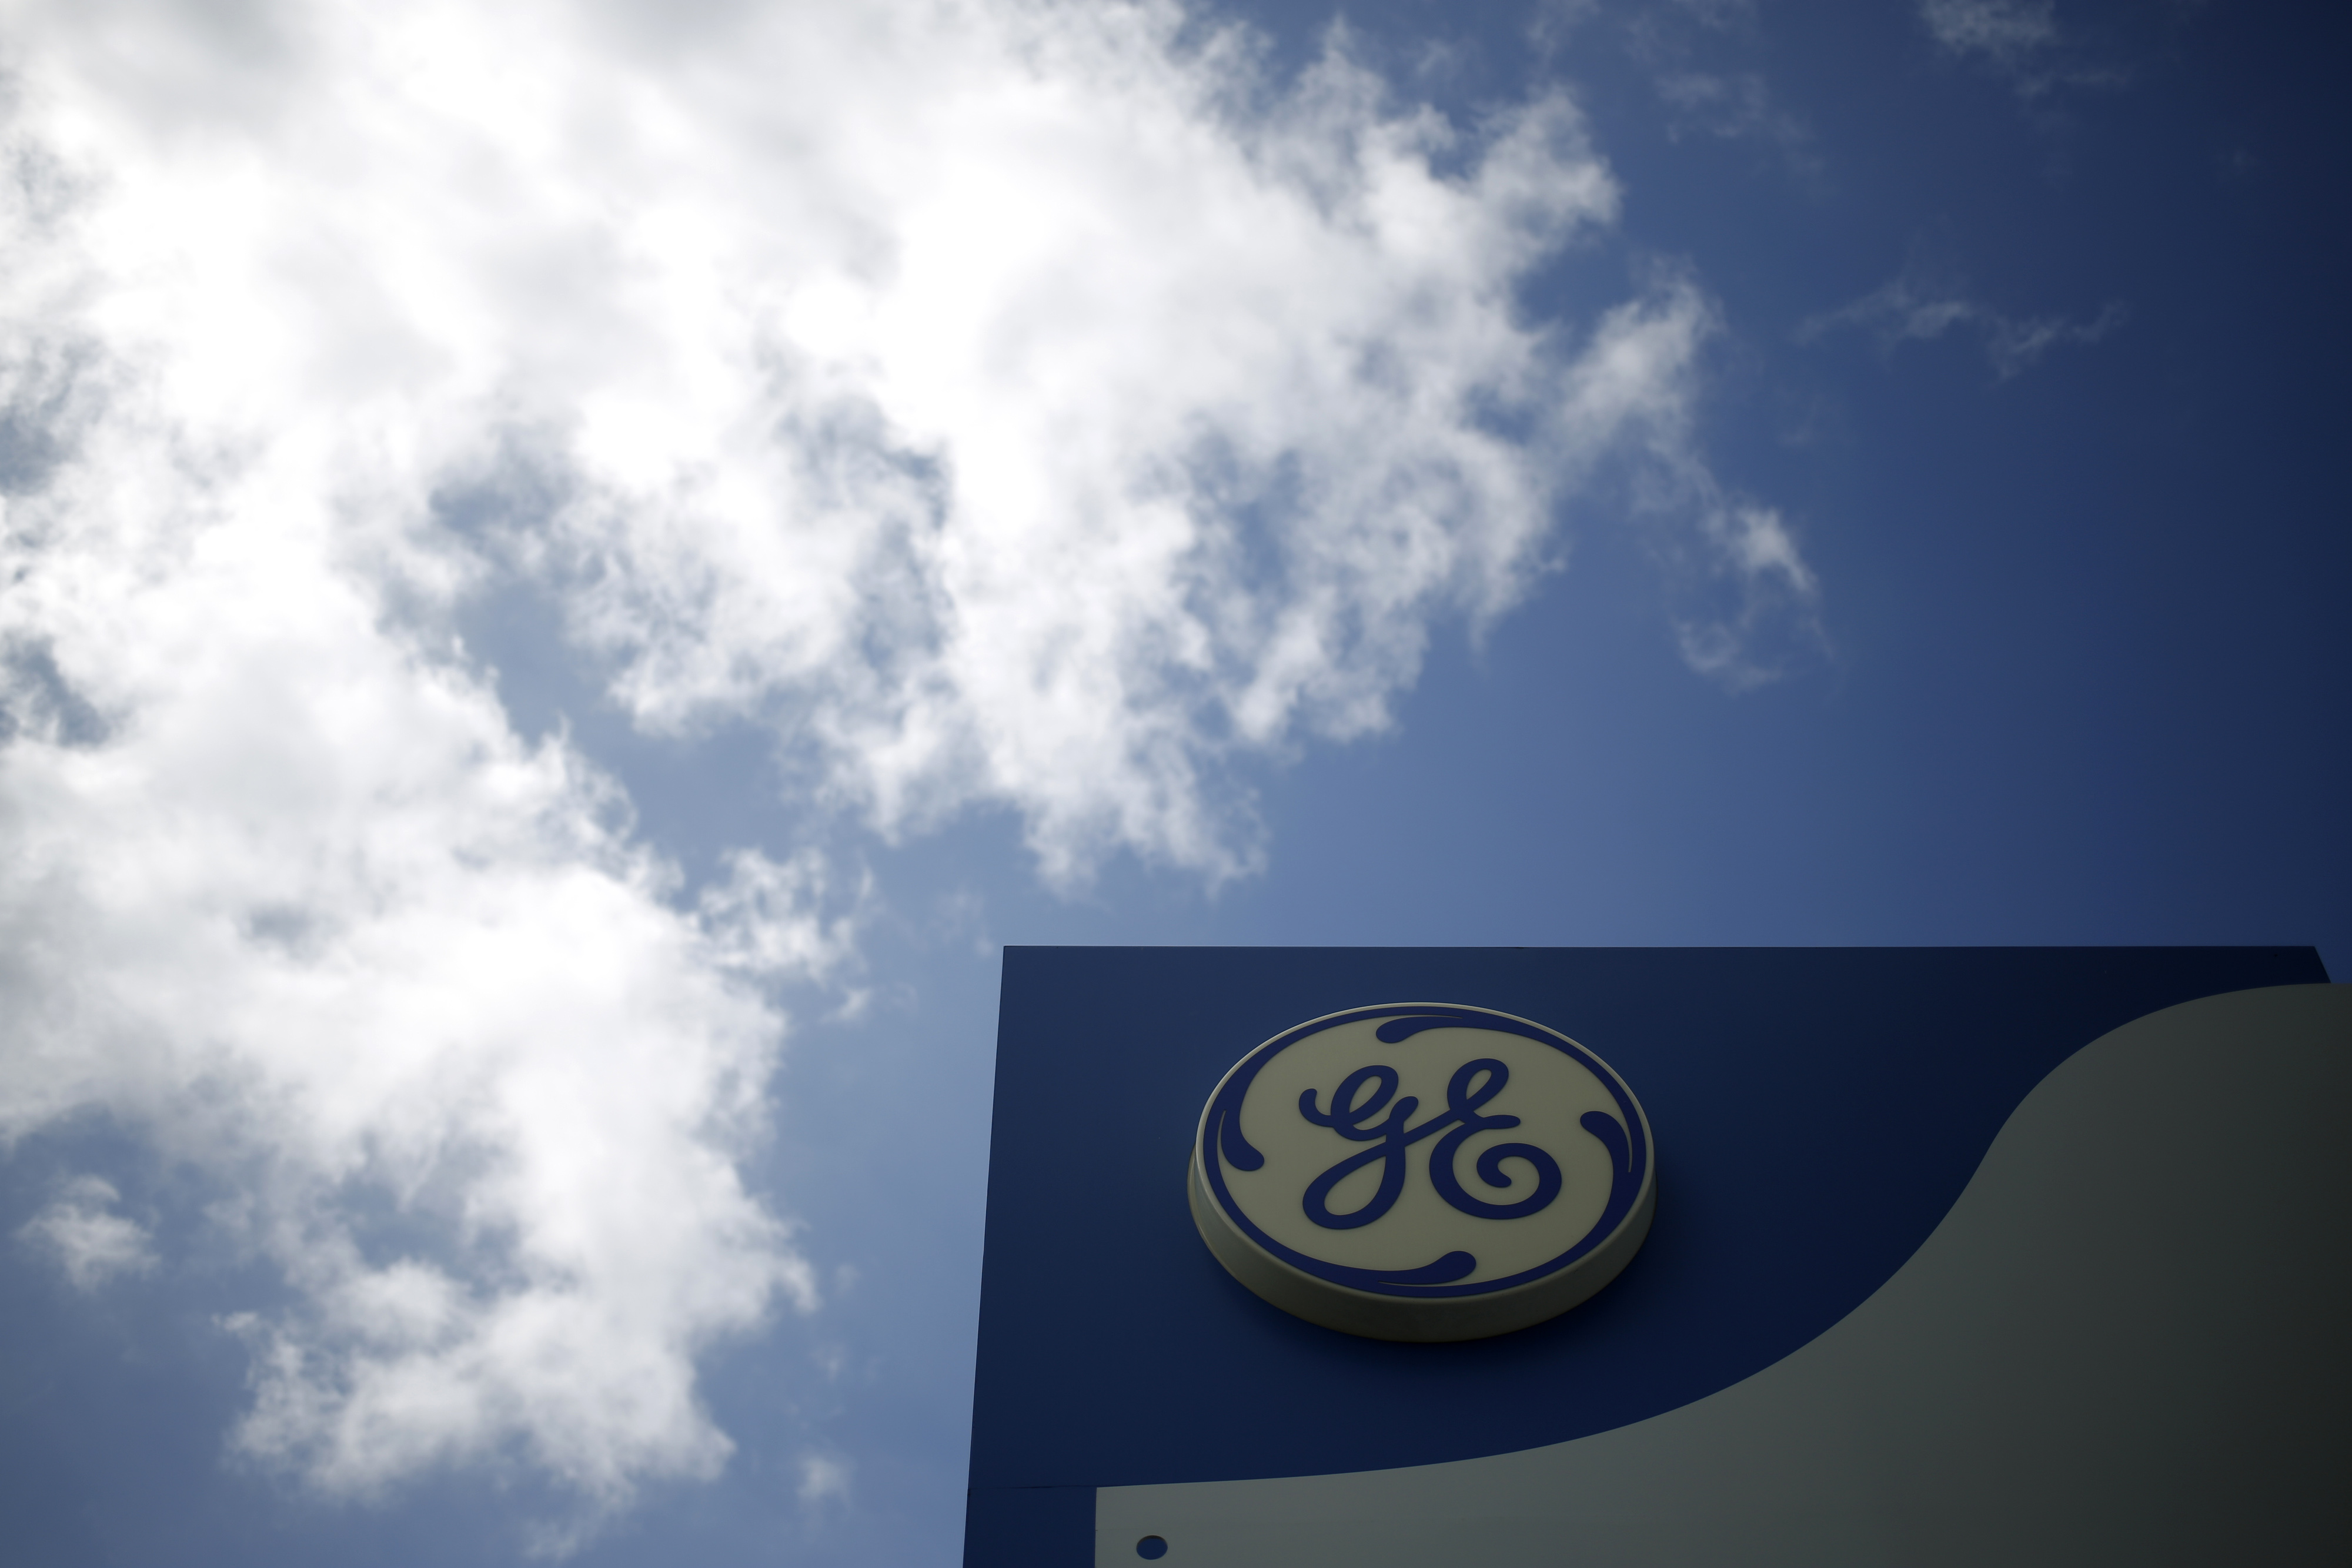 <strong>General Electric</strong> GE kicked off 2013 with a large asset sale announcement, agreeing in February to sell its remaining stake in NBCUniversal's joint venture with Comcast for $18.1 billion. Proceeds from that sale were used to accelerate both share buybacks and the conglomerate's restructuring plans. In the year ahead, GE is looking to invest. In April, the company made an offer to to buy French firm Alstom's power and grid businesses for nearly $17 billion — a deal that would, if approved, immediately boost GE's earnings.